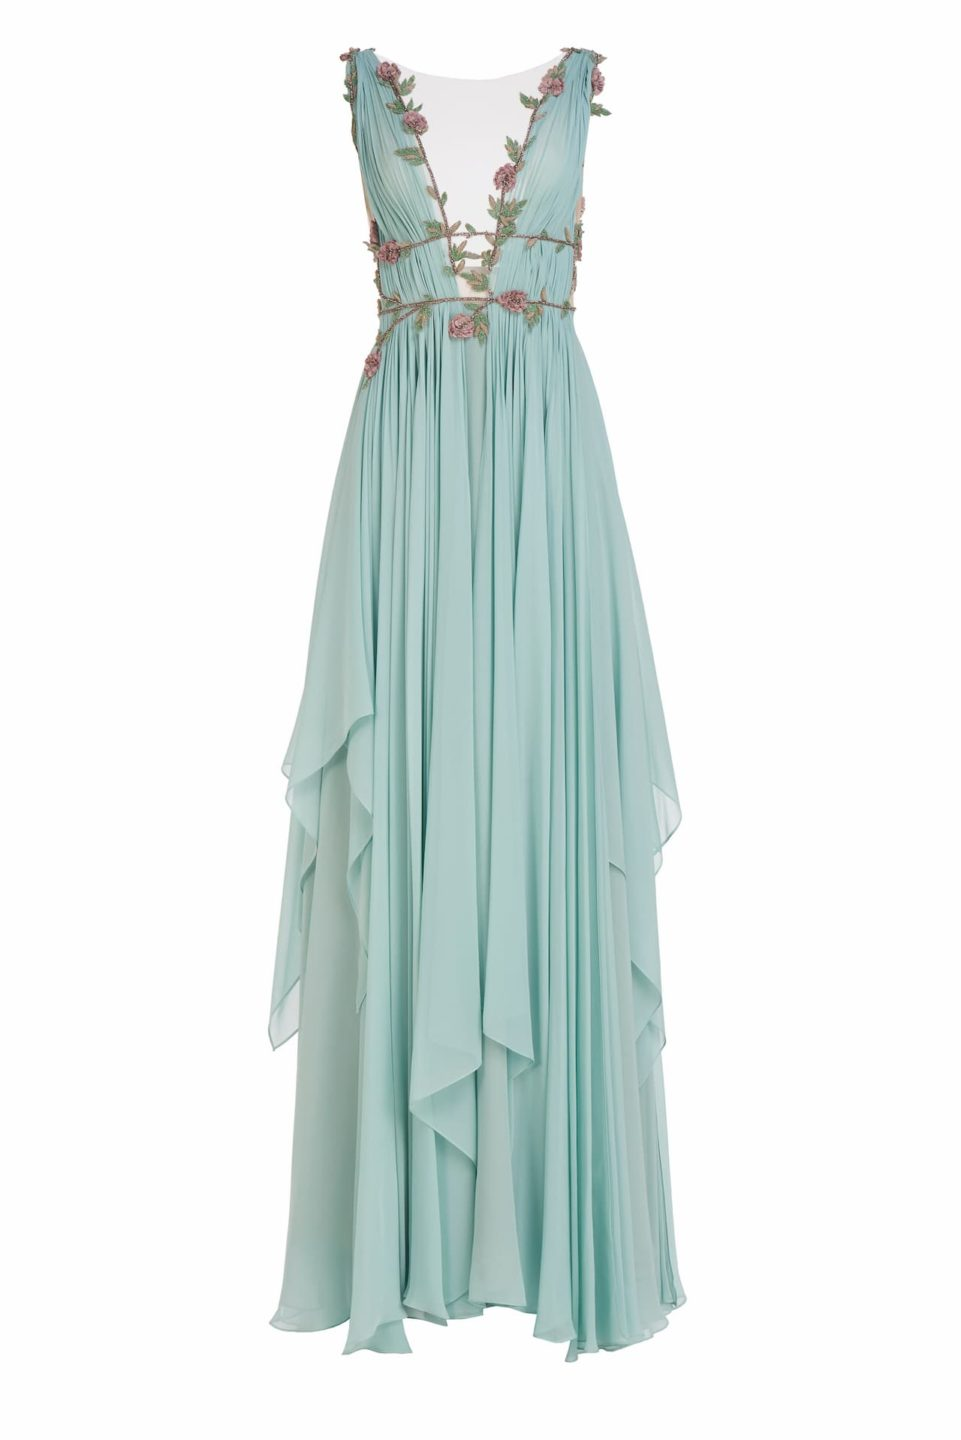 Radella SS2161 Green Draped Grecian Silk Chiffon Gown with Caged Bodice and Beaded Embellishments